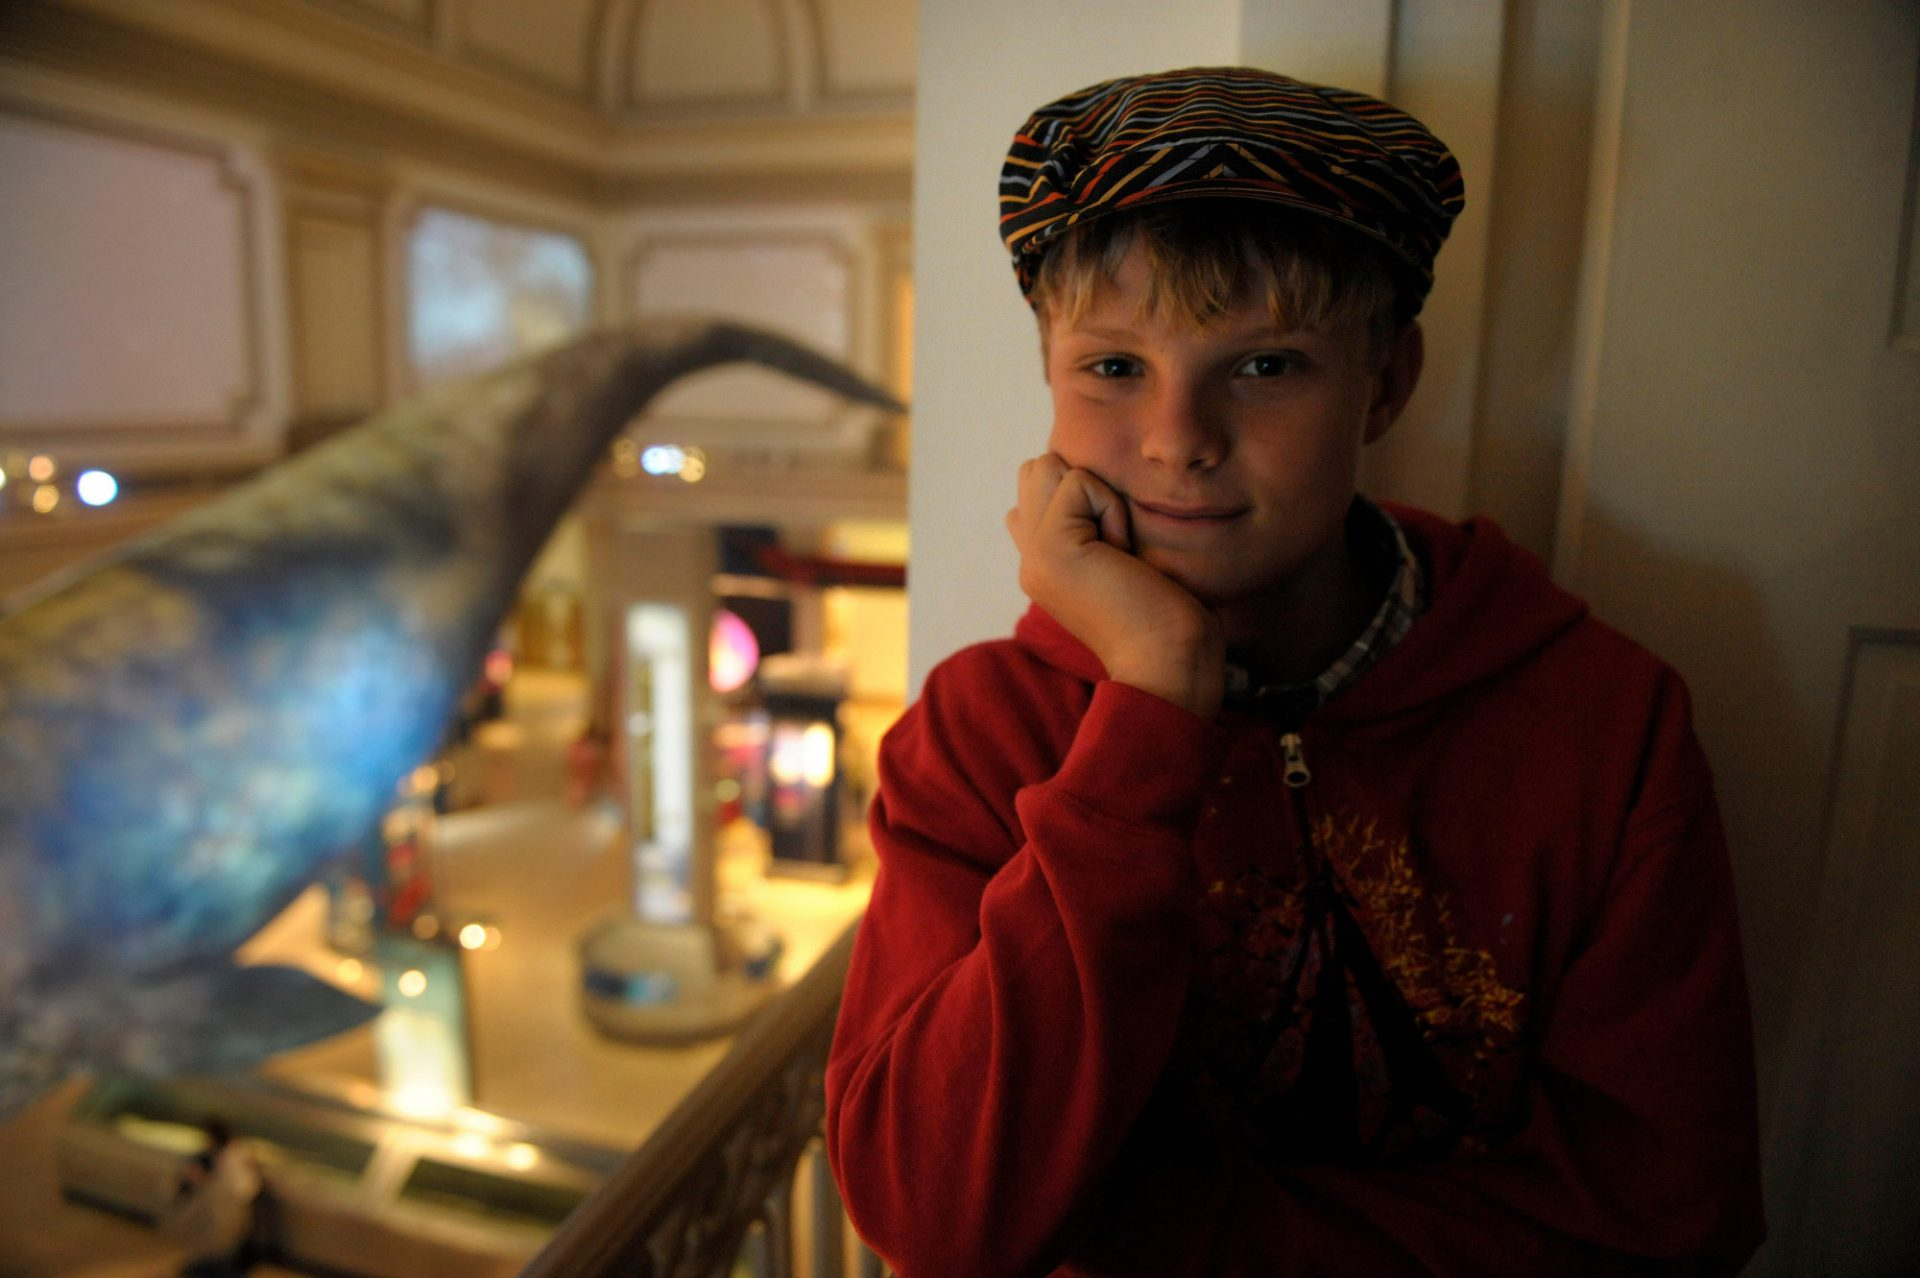 Photo: A young boy at the Smithsonian Museum of Natural History.